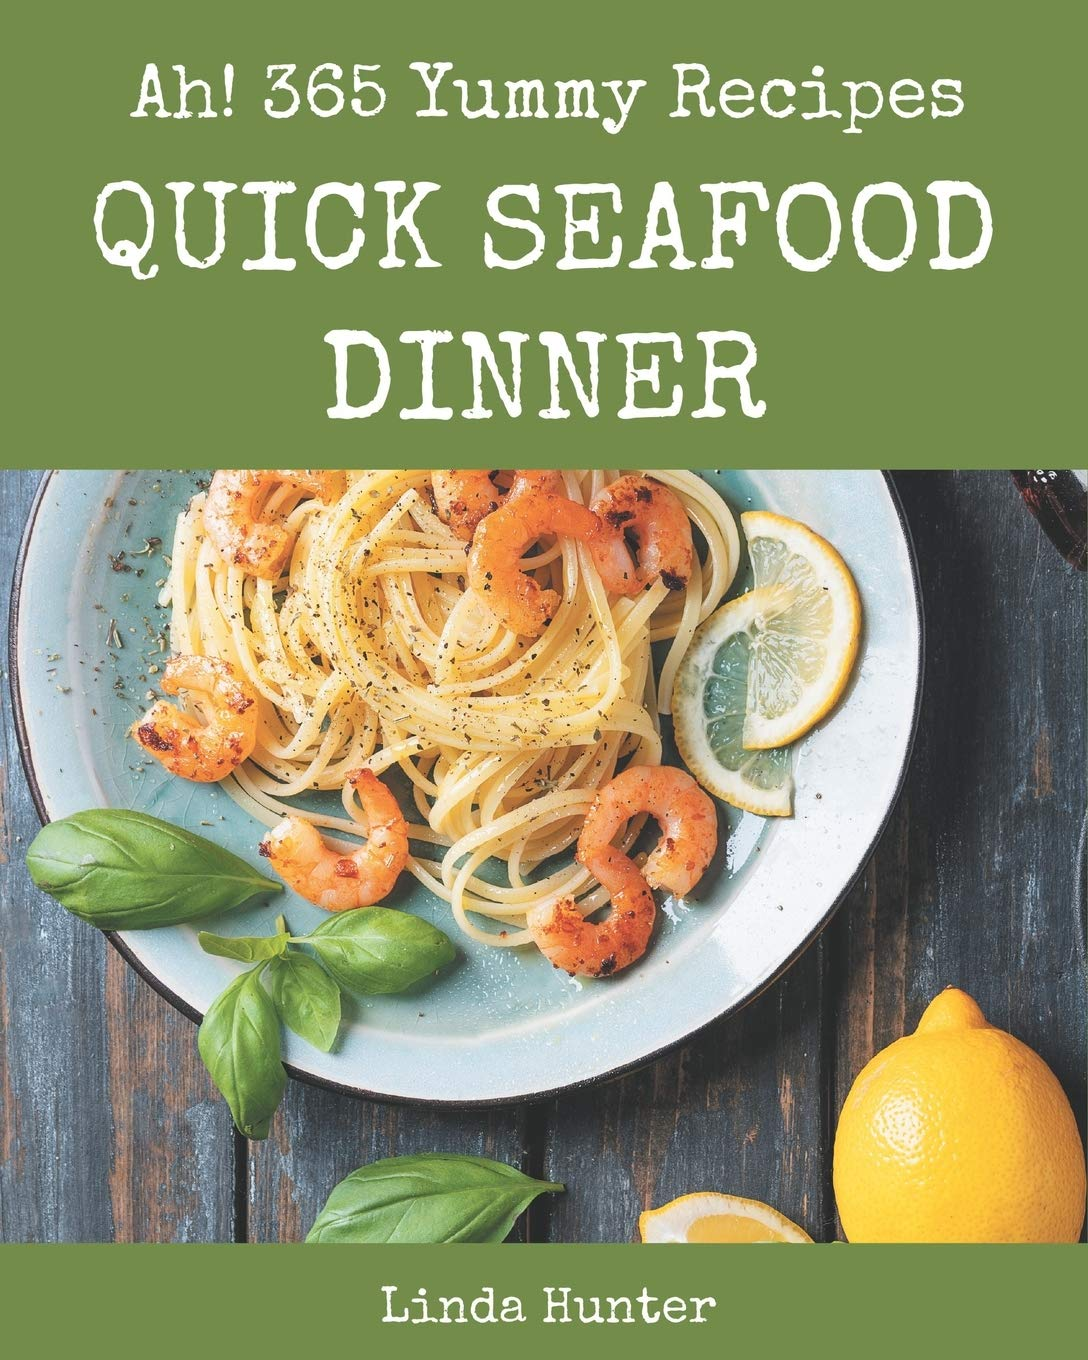 365 Yummy Quick Seafood Dinner Recipes ...